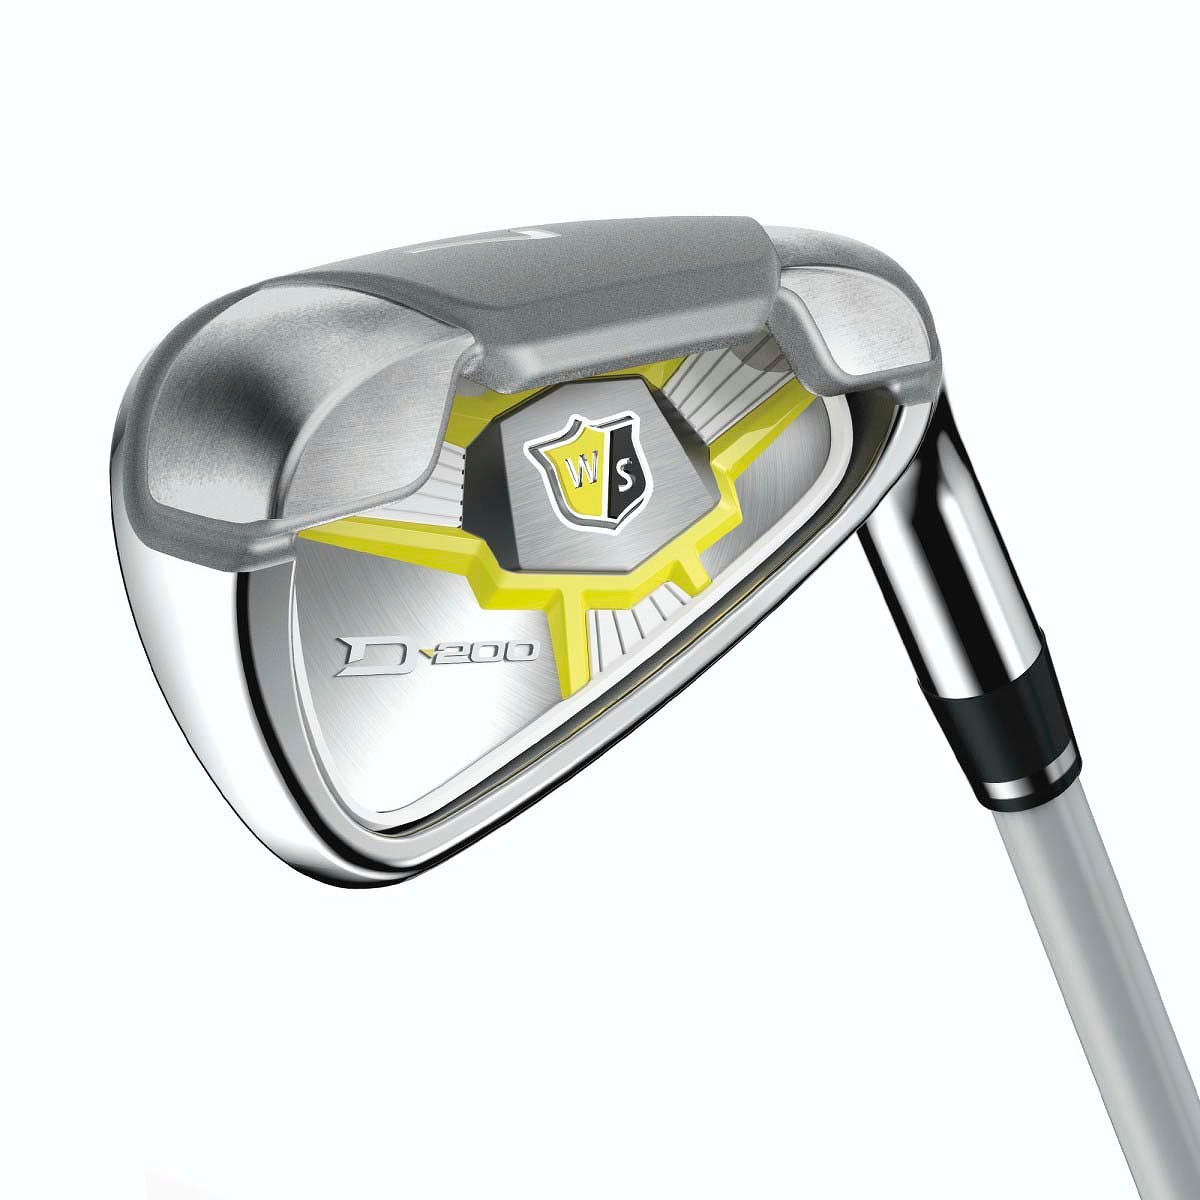 Online shopping for Toys & Games from a great selection of Wedges & Utility Clubs, Irons, Putters, Drivers, Golf Club Sets & more at everyday low prices.